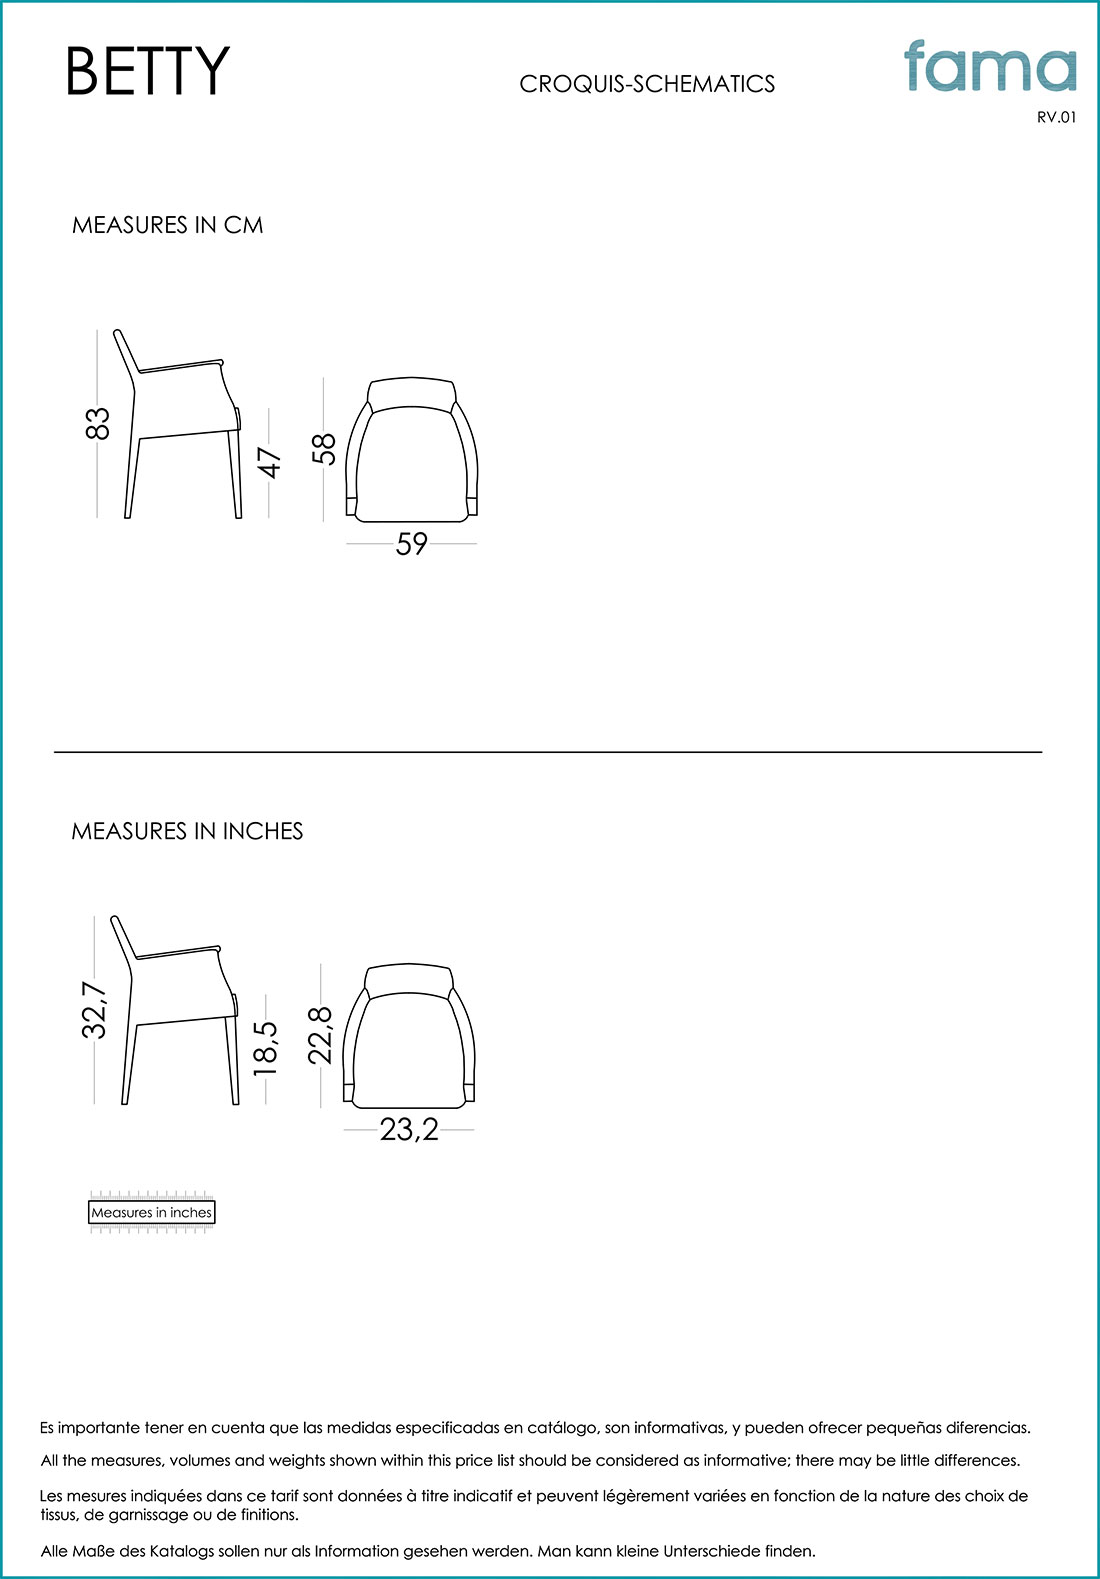 modern-wood-chair-famaliving-montreal-betty-specification-sheet